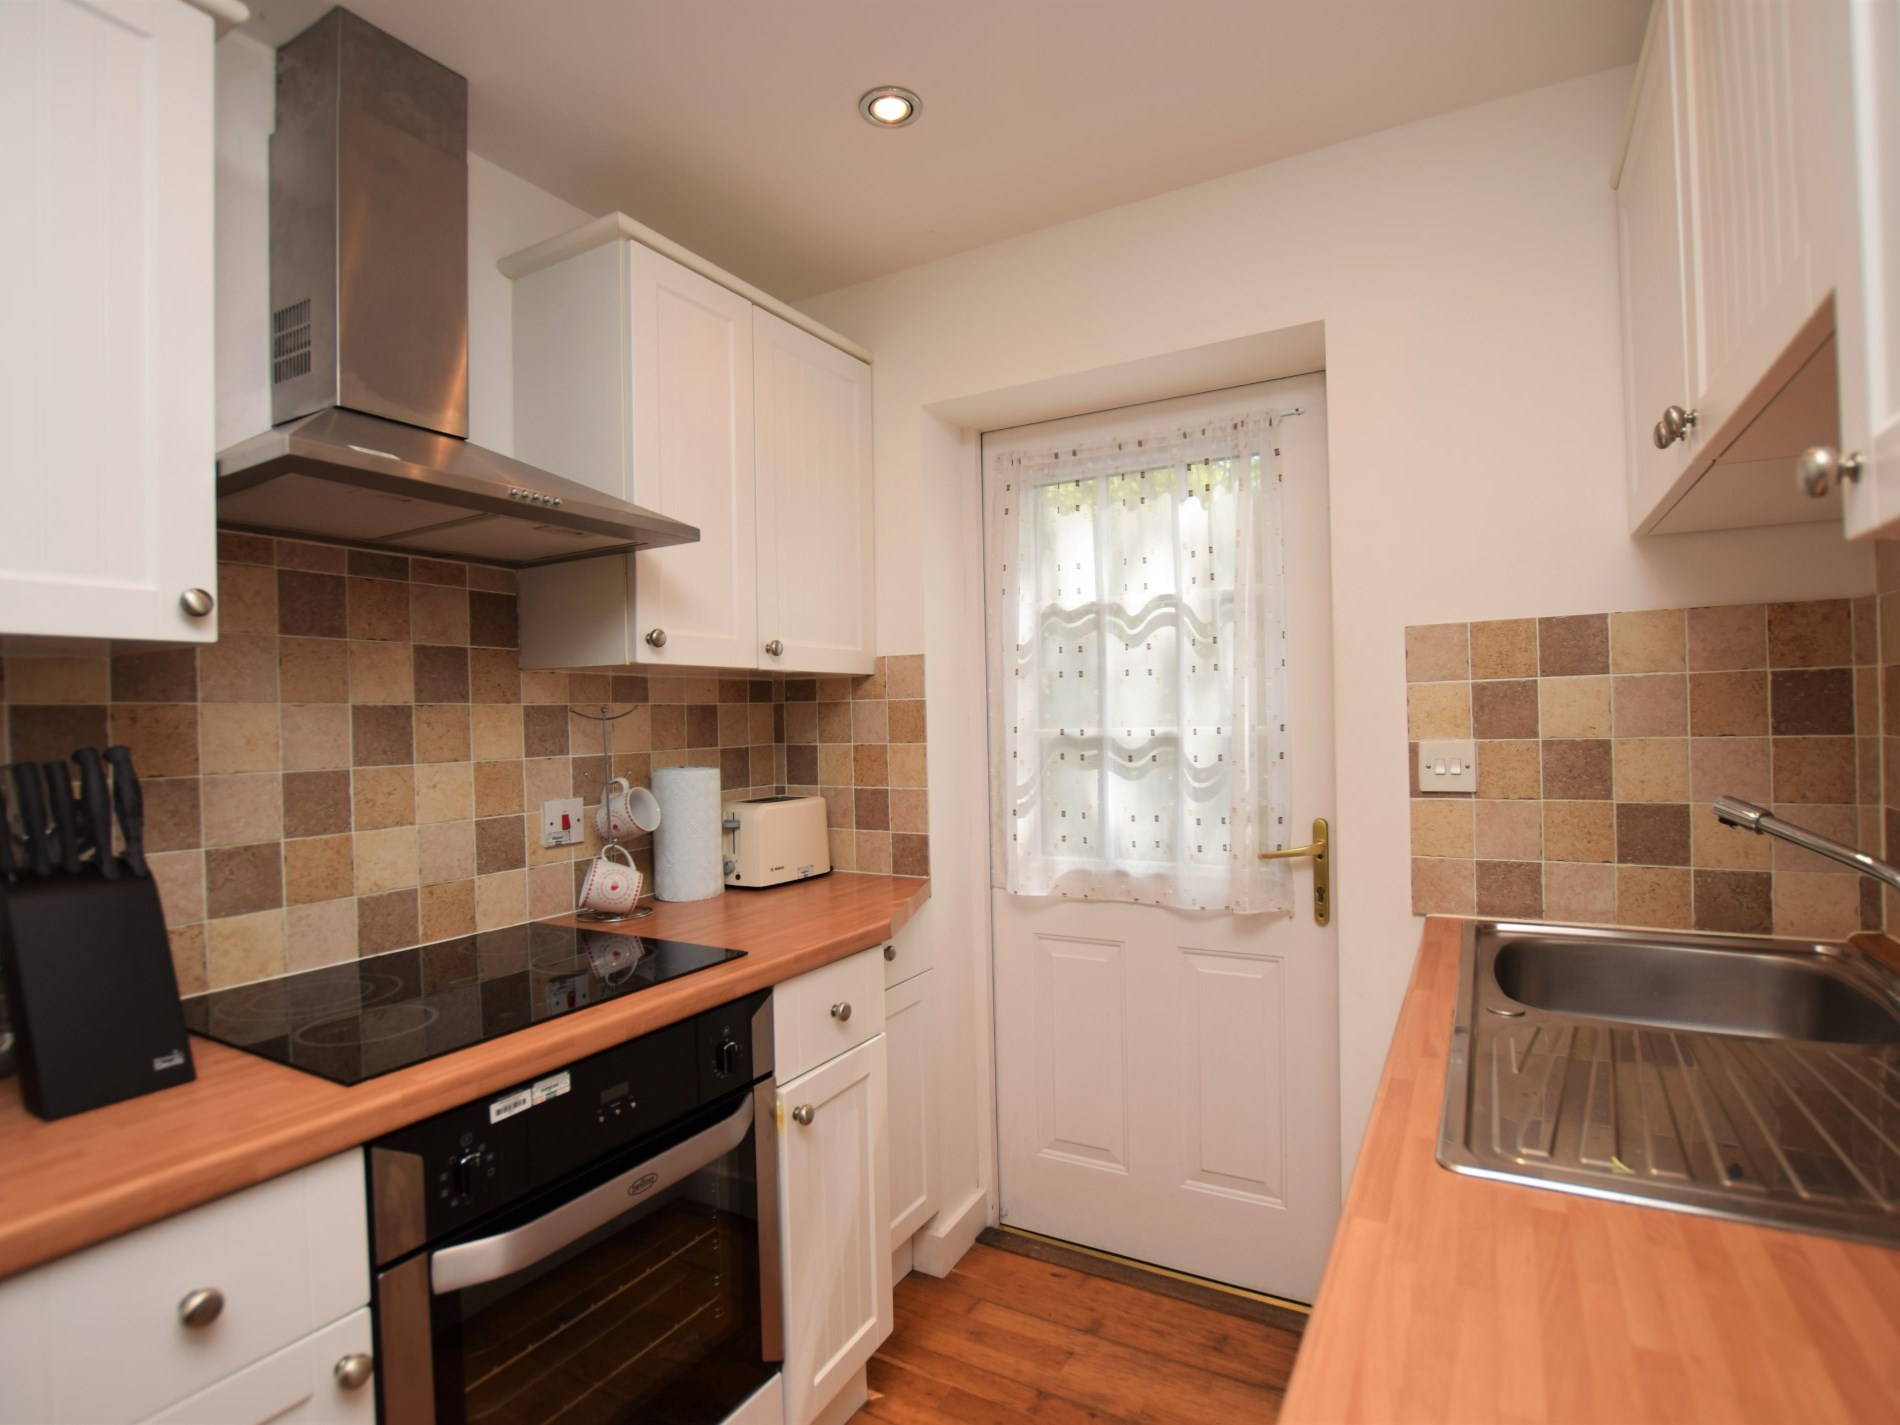 2 Bedroom Cottage in Camelford, Cornwall